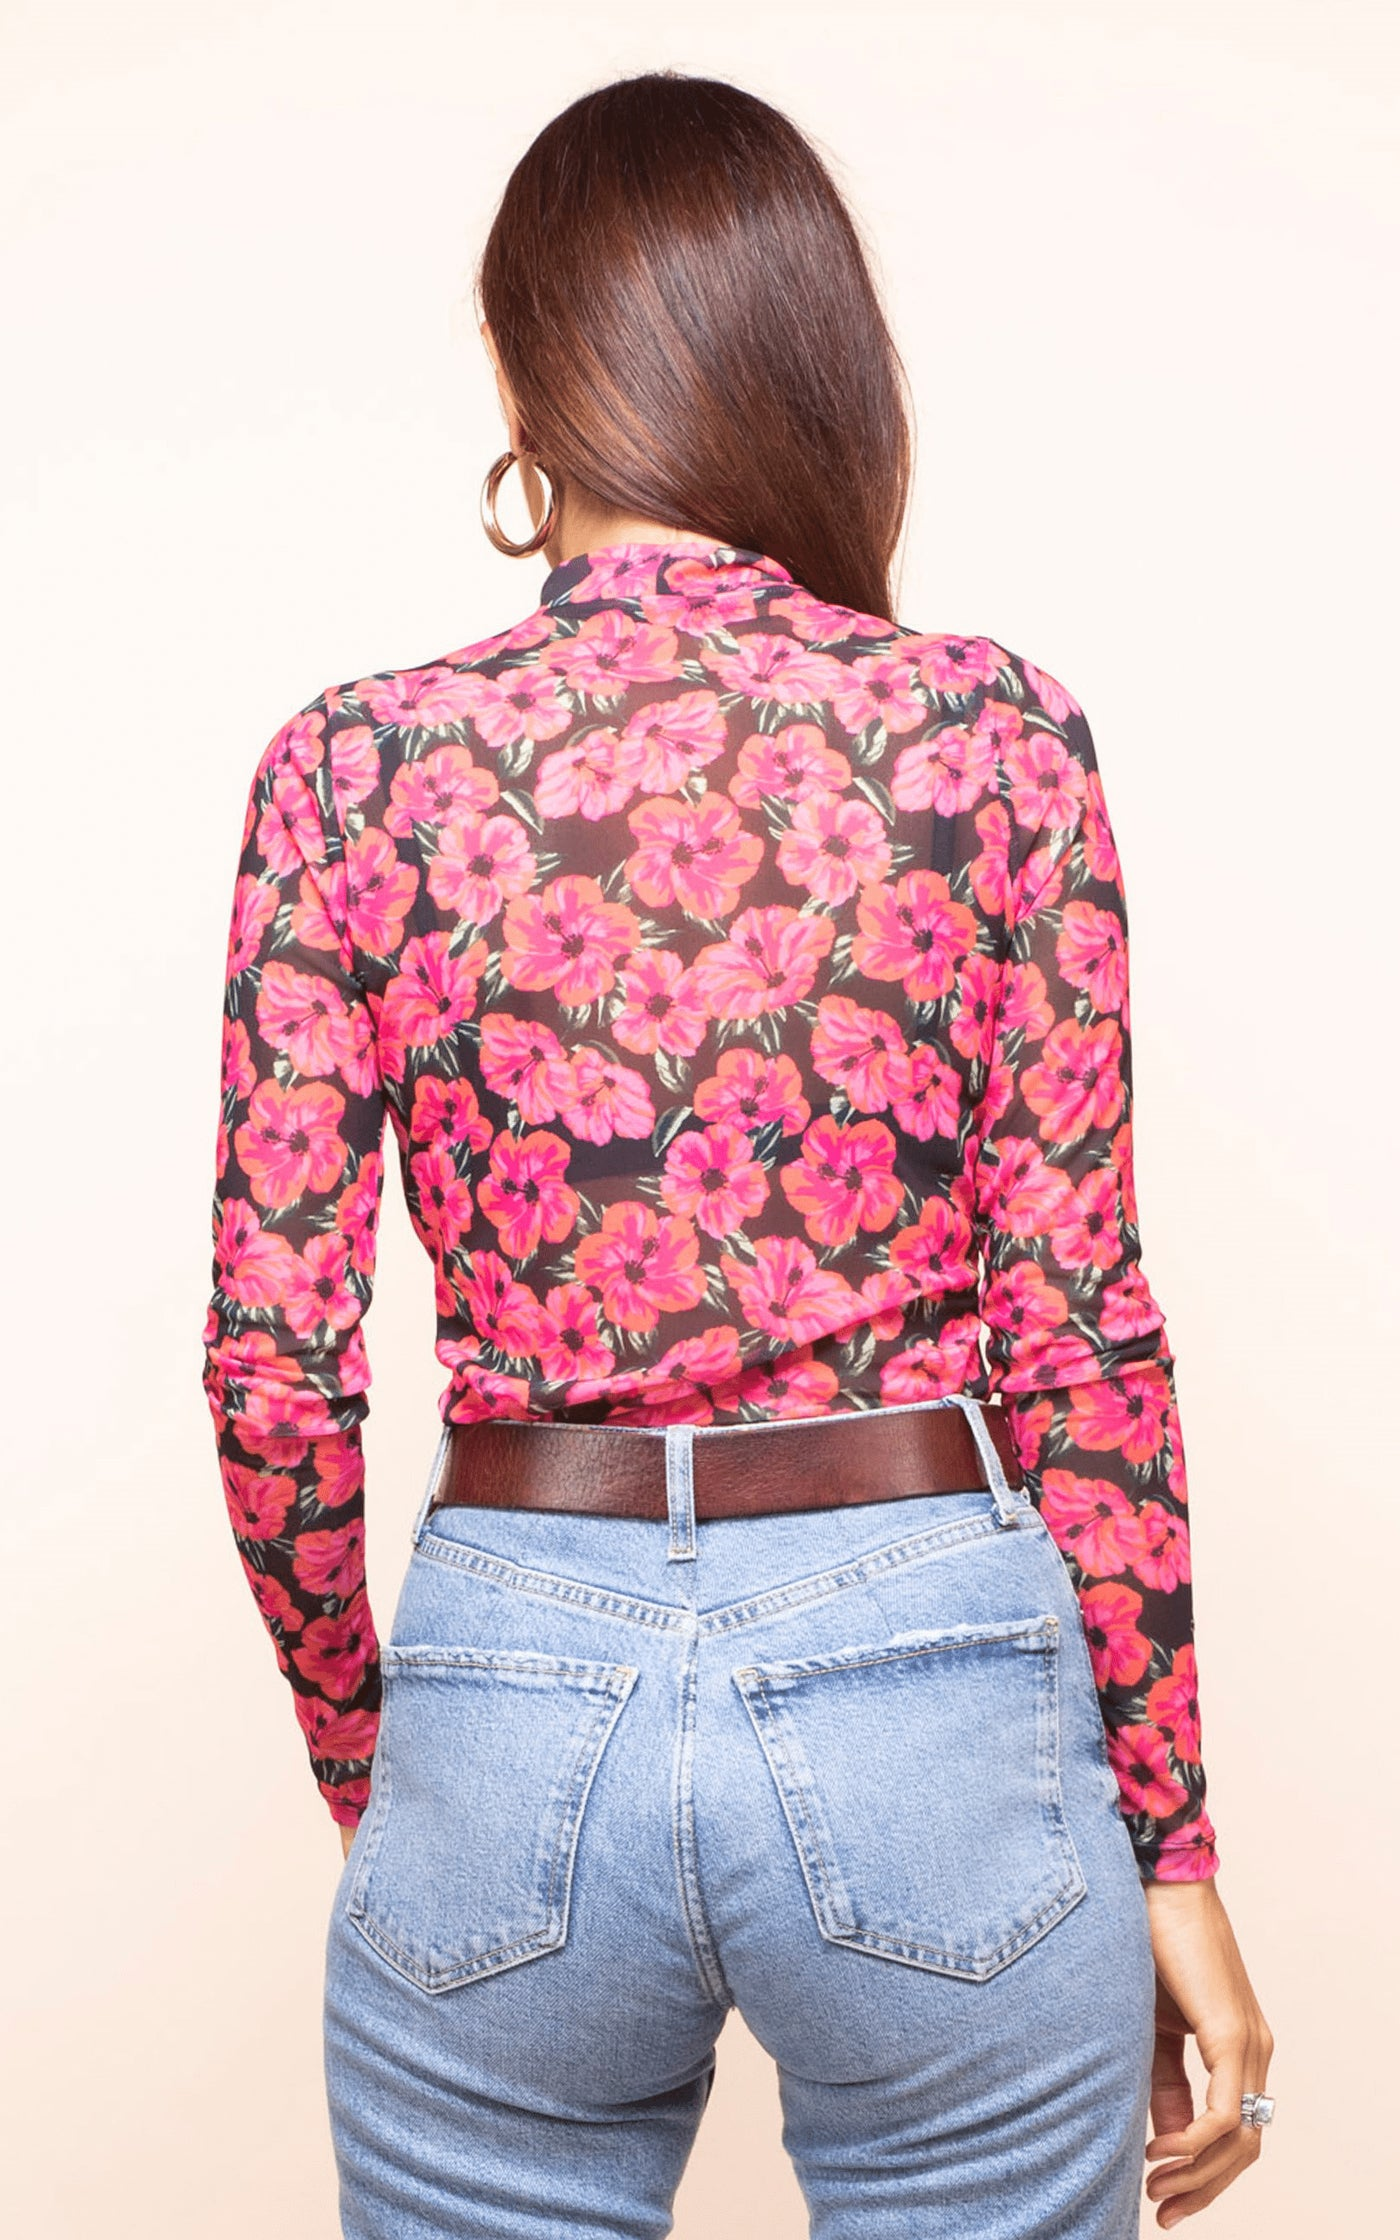 Backward-facing model wears Dancing Leopard Mitzi Frill Top in pink and black floral print